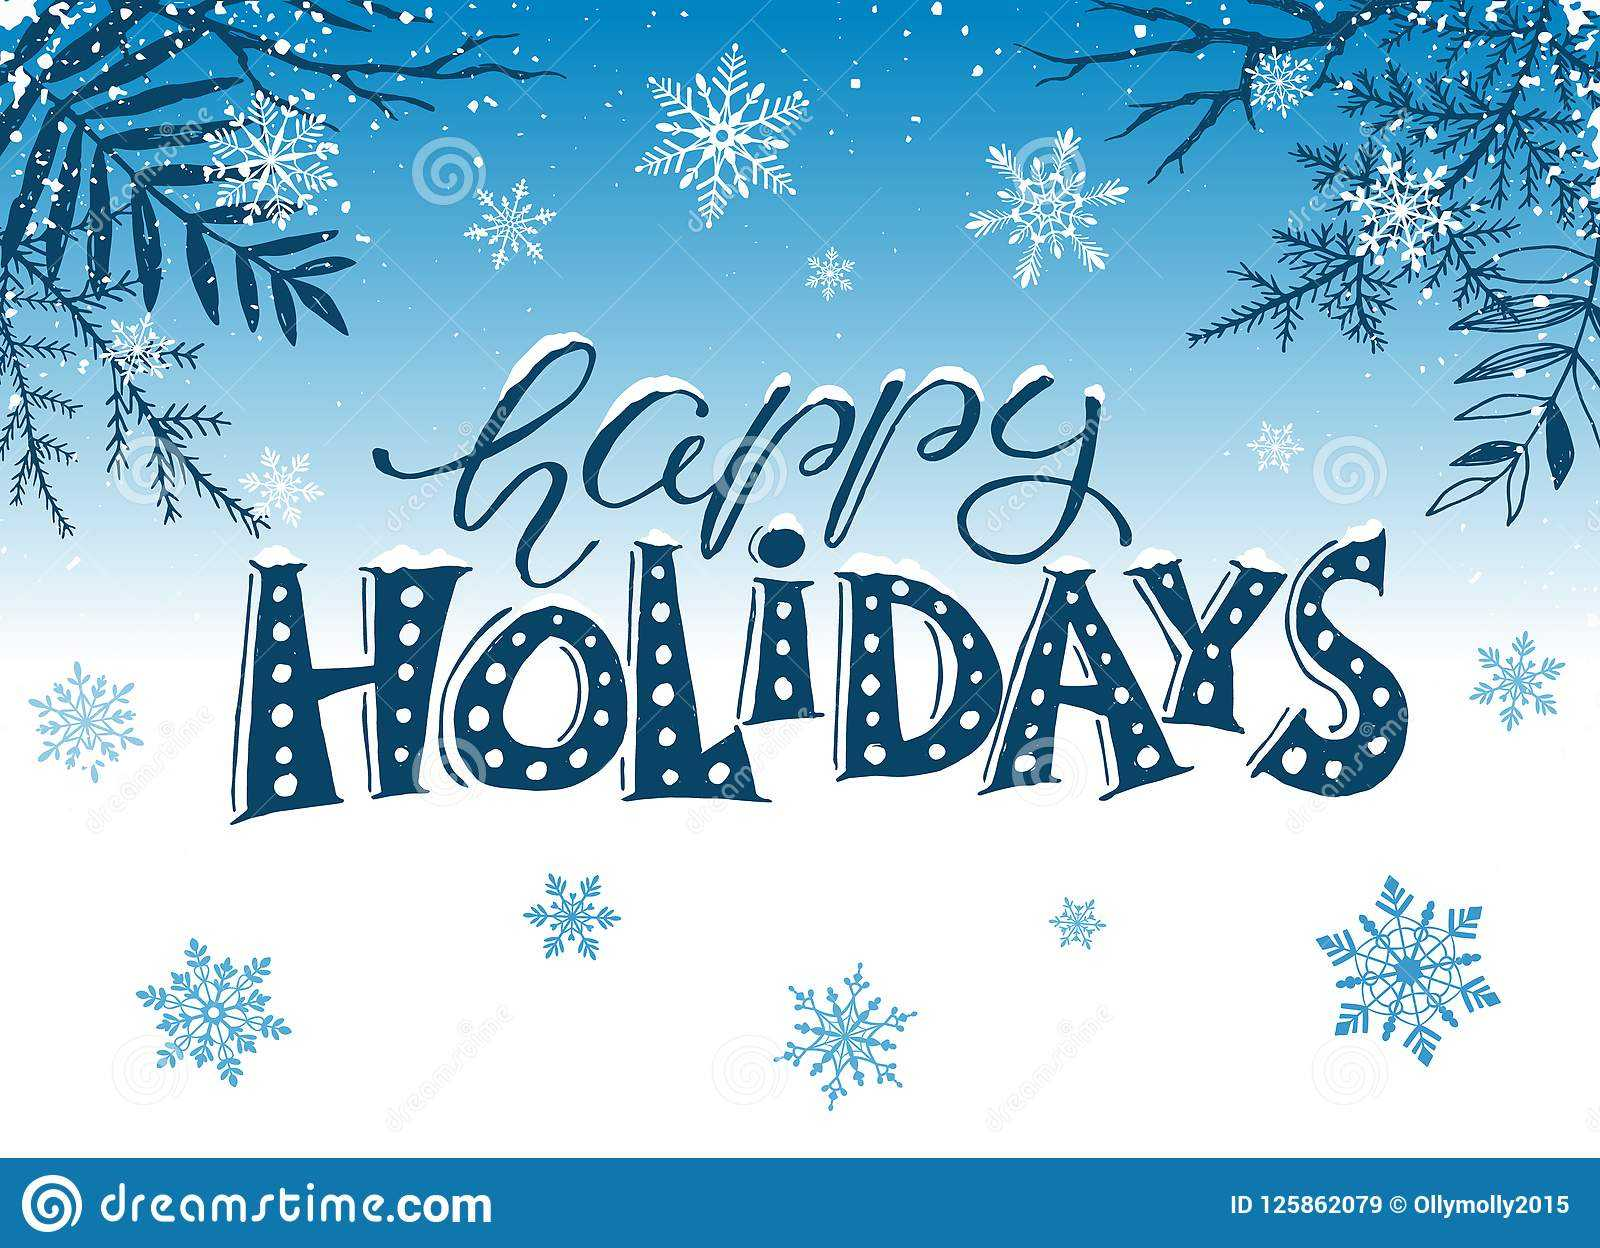 Happy Holidays Greeting Card Stock Vector - Illustration Of Regarding Happy Holidays Card Template